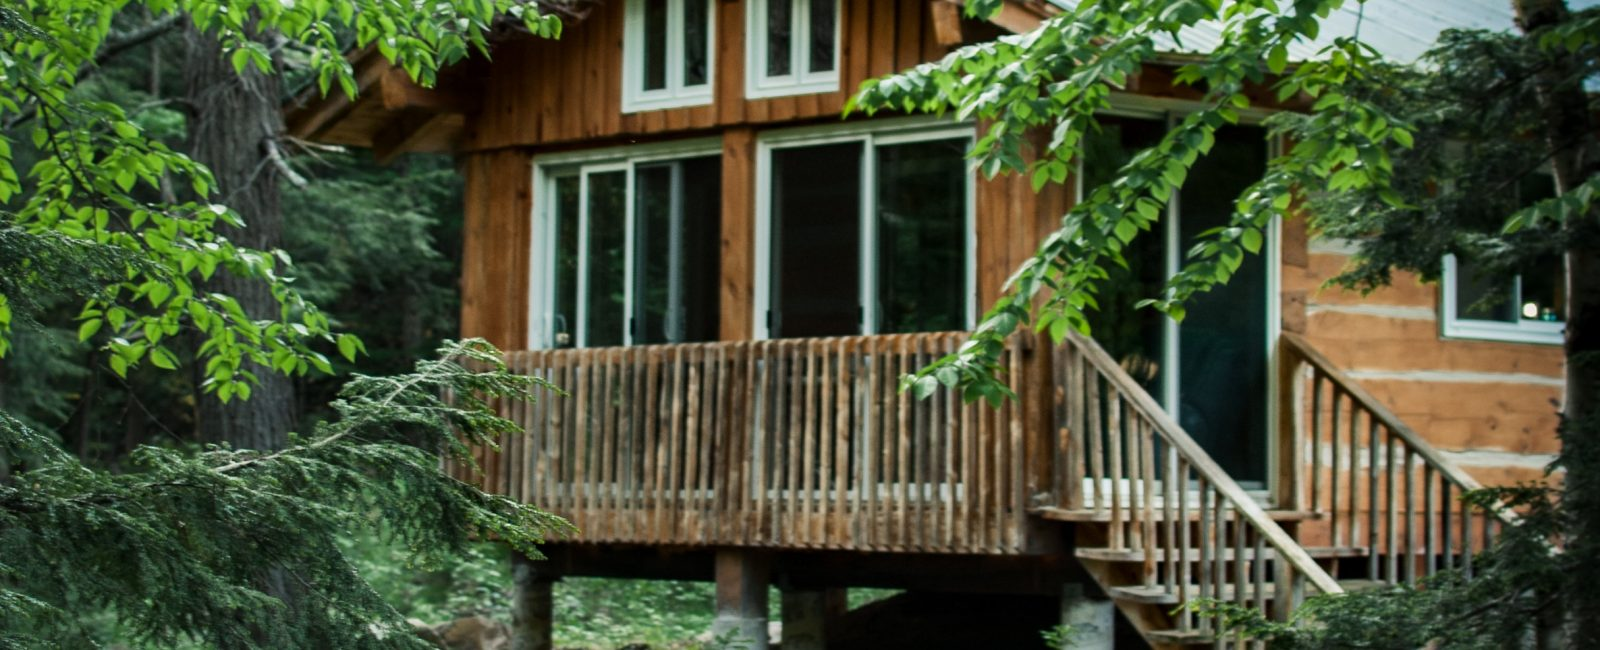 wooden house at forest